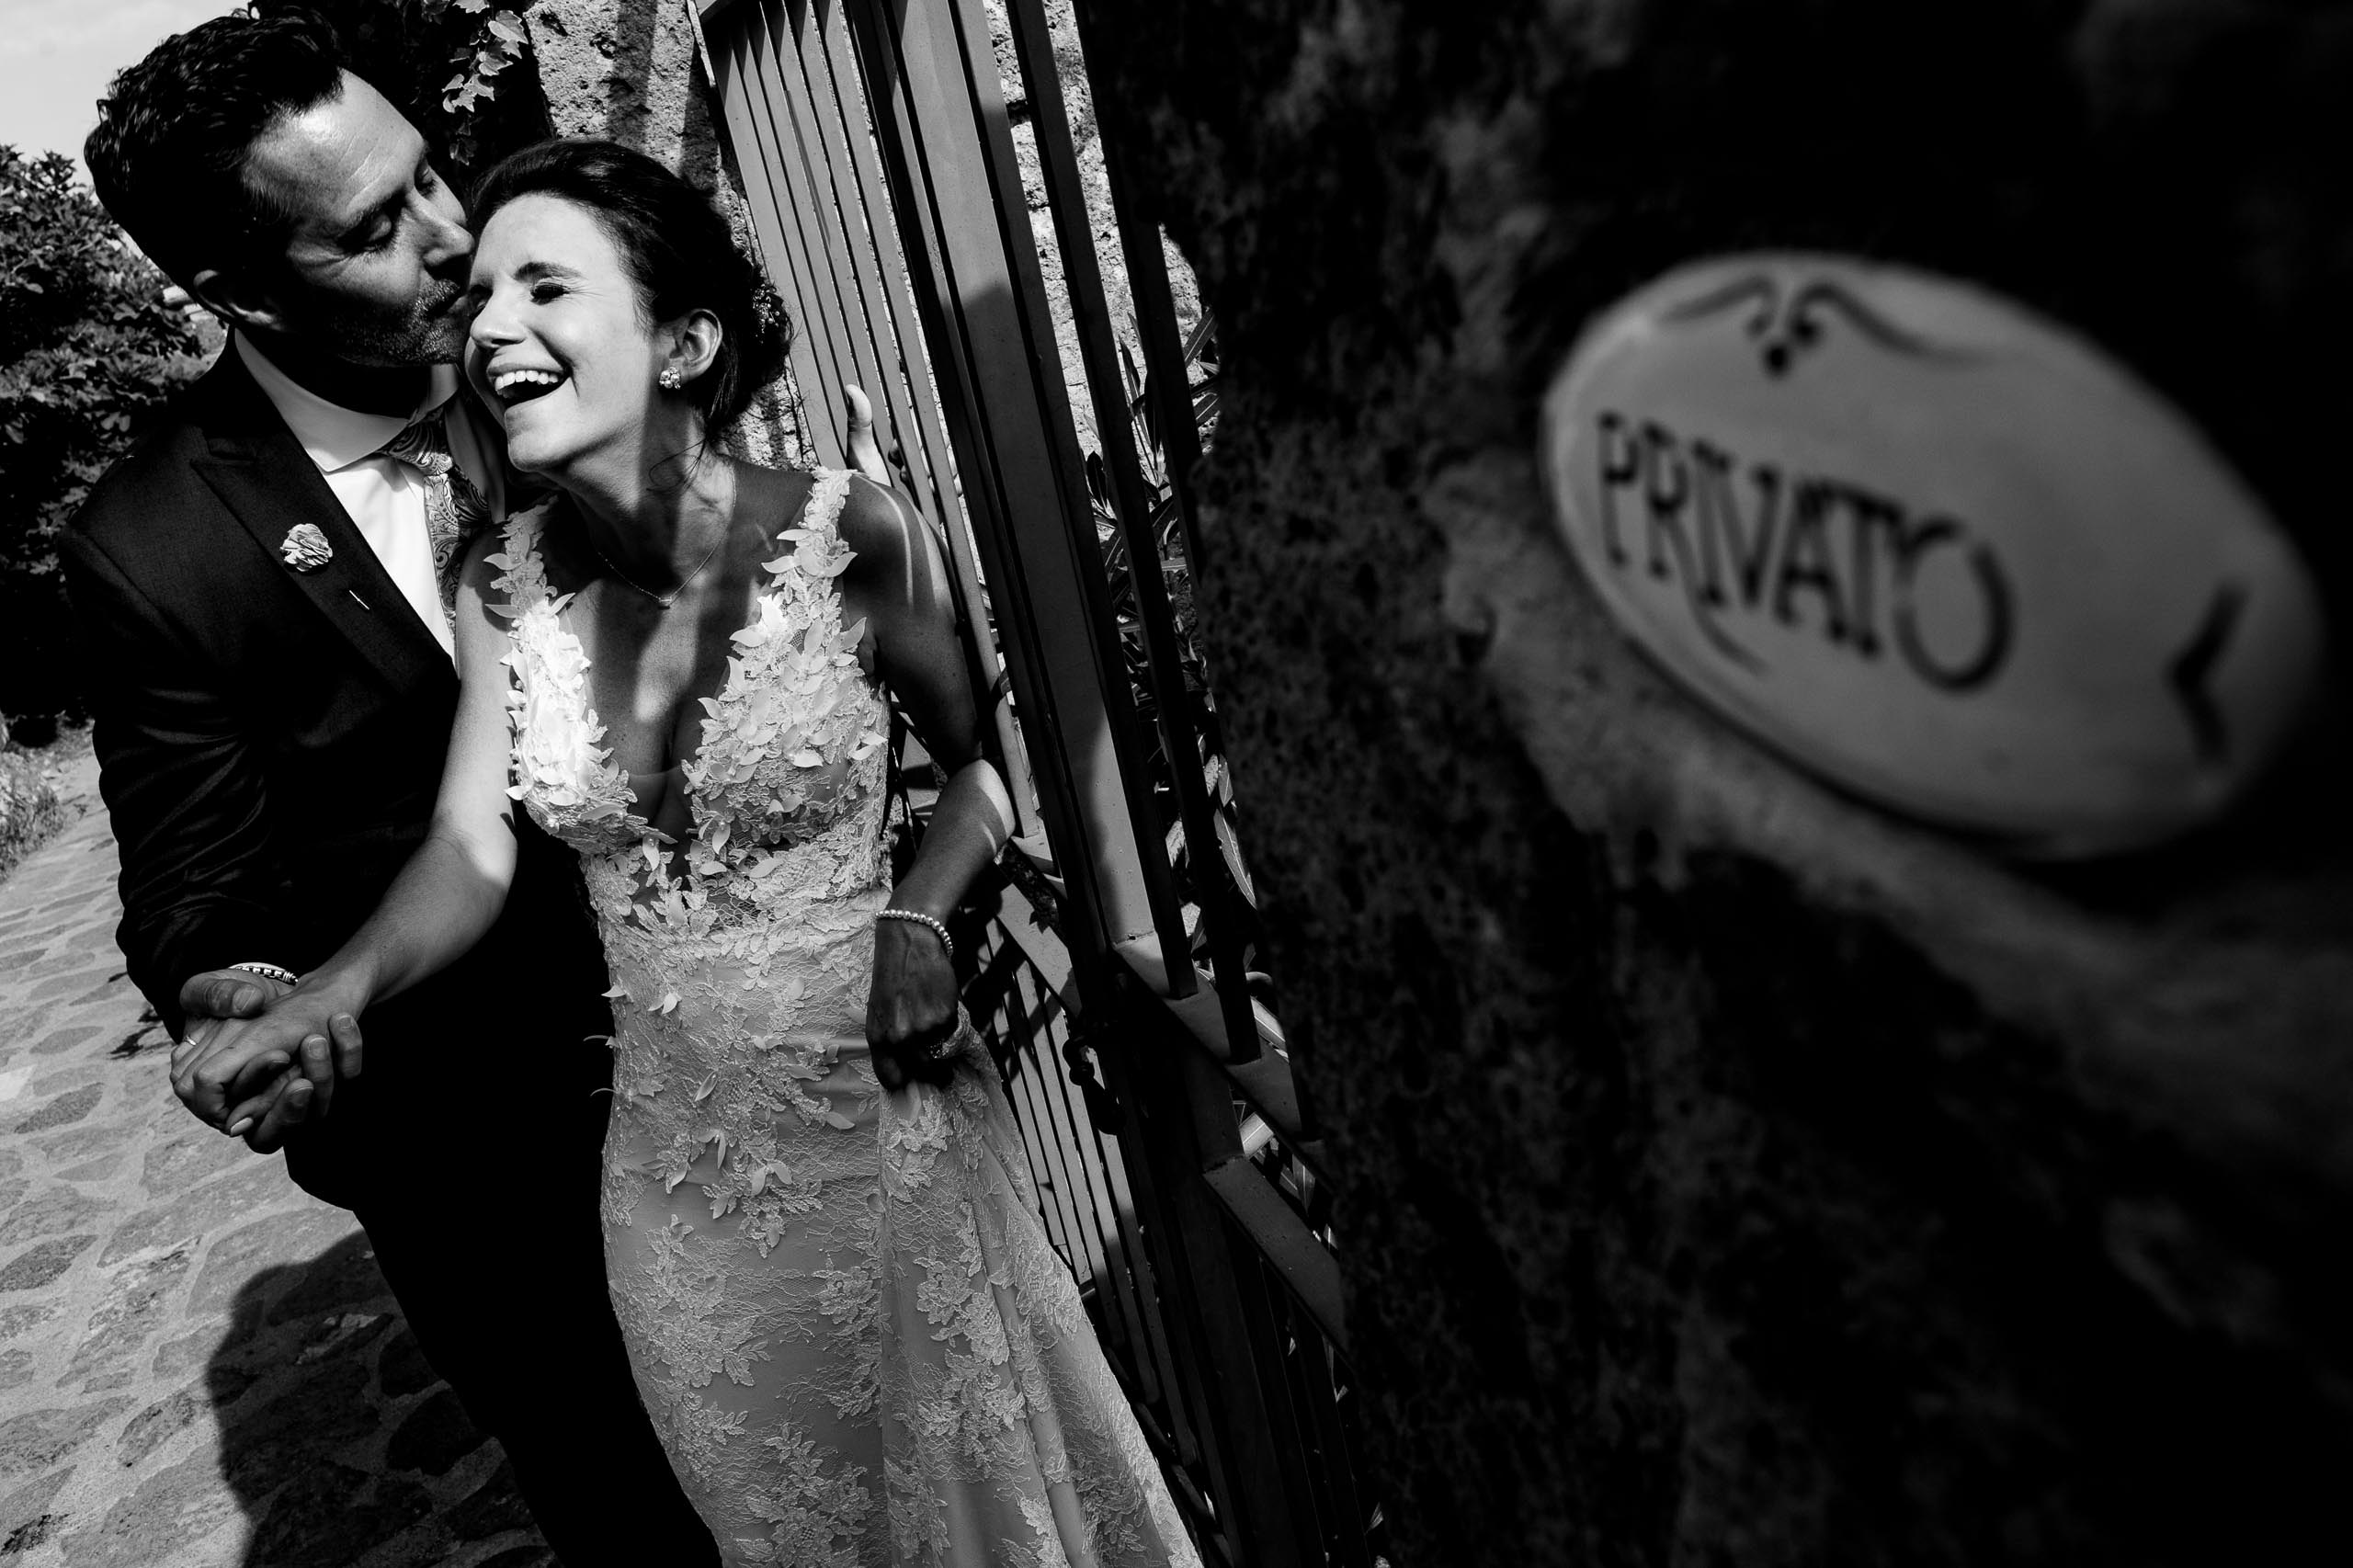 Bride and Groom laughing together in the backstreets of civita di bagnoregio in Italy before their Villa Tre Grazie wedding celebration